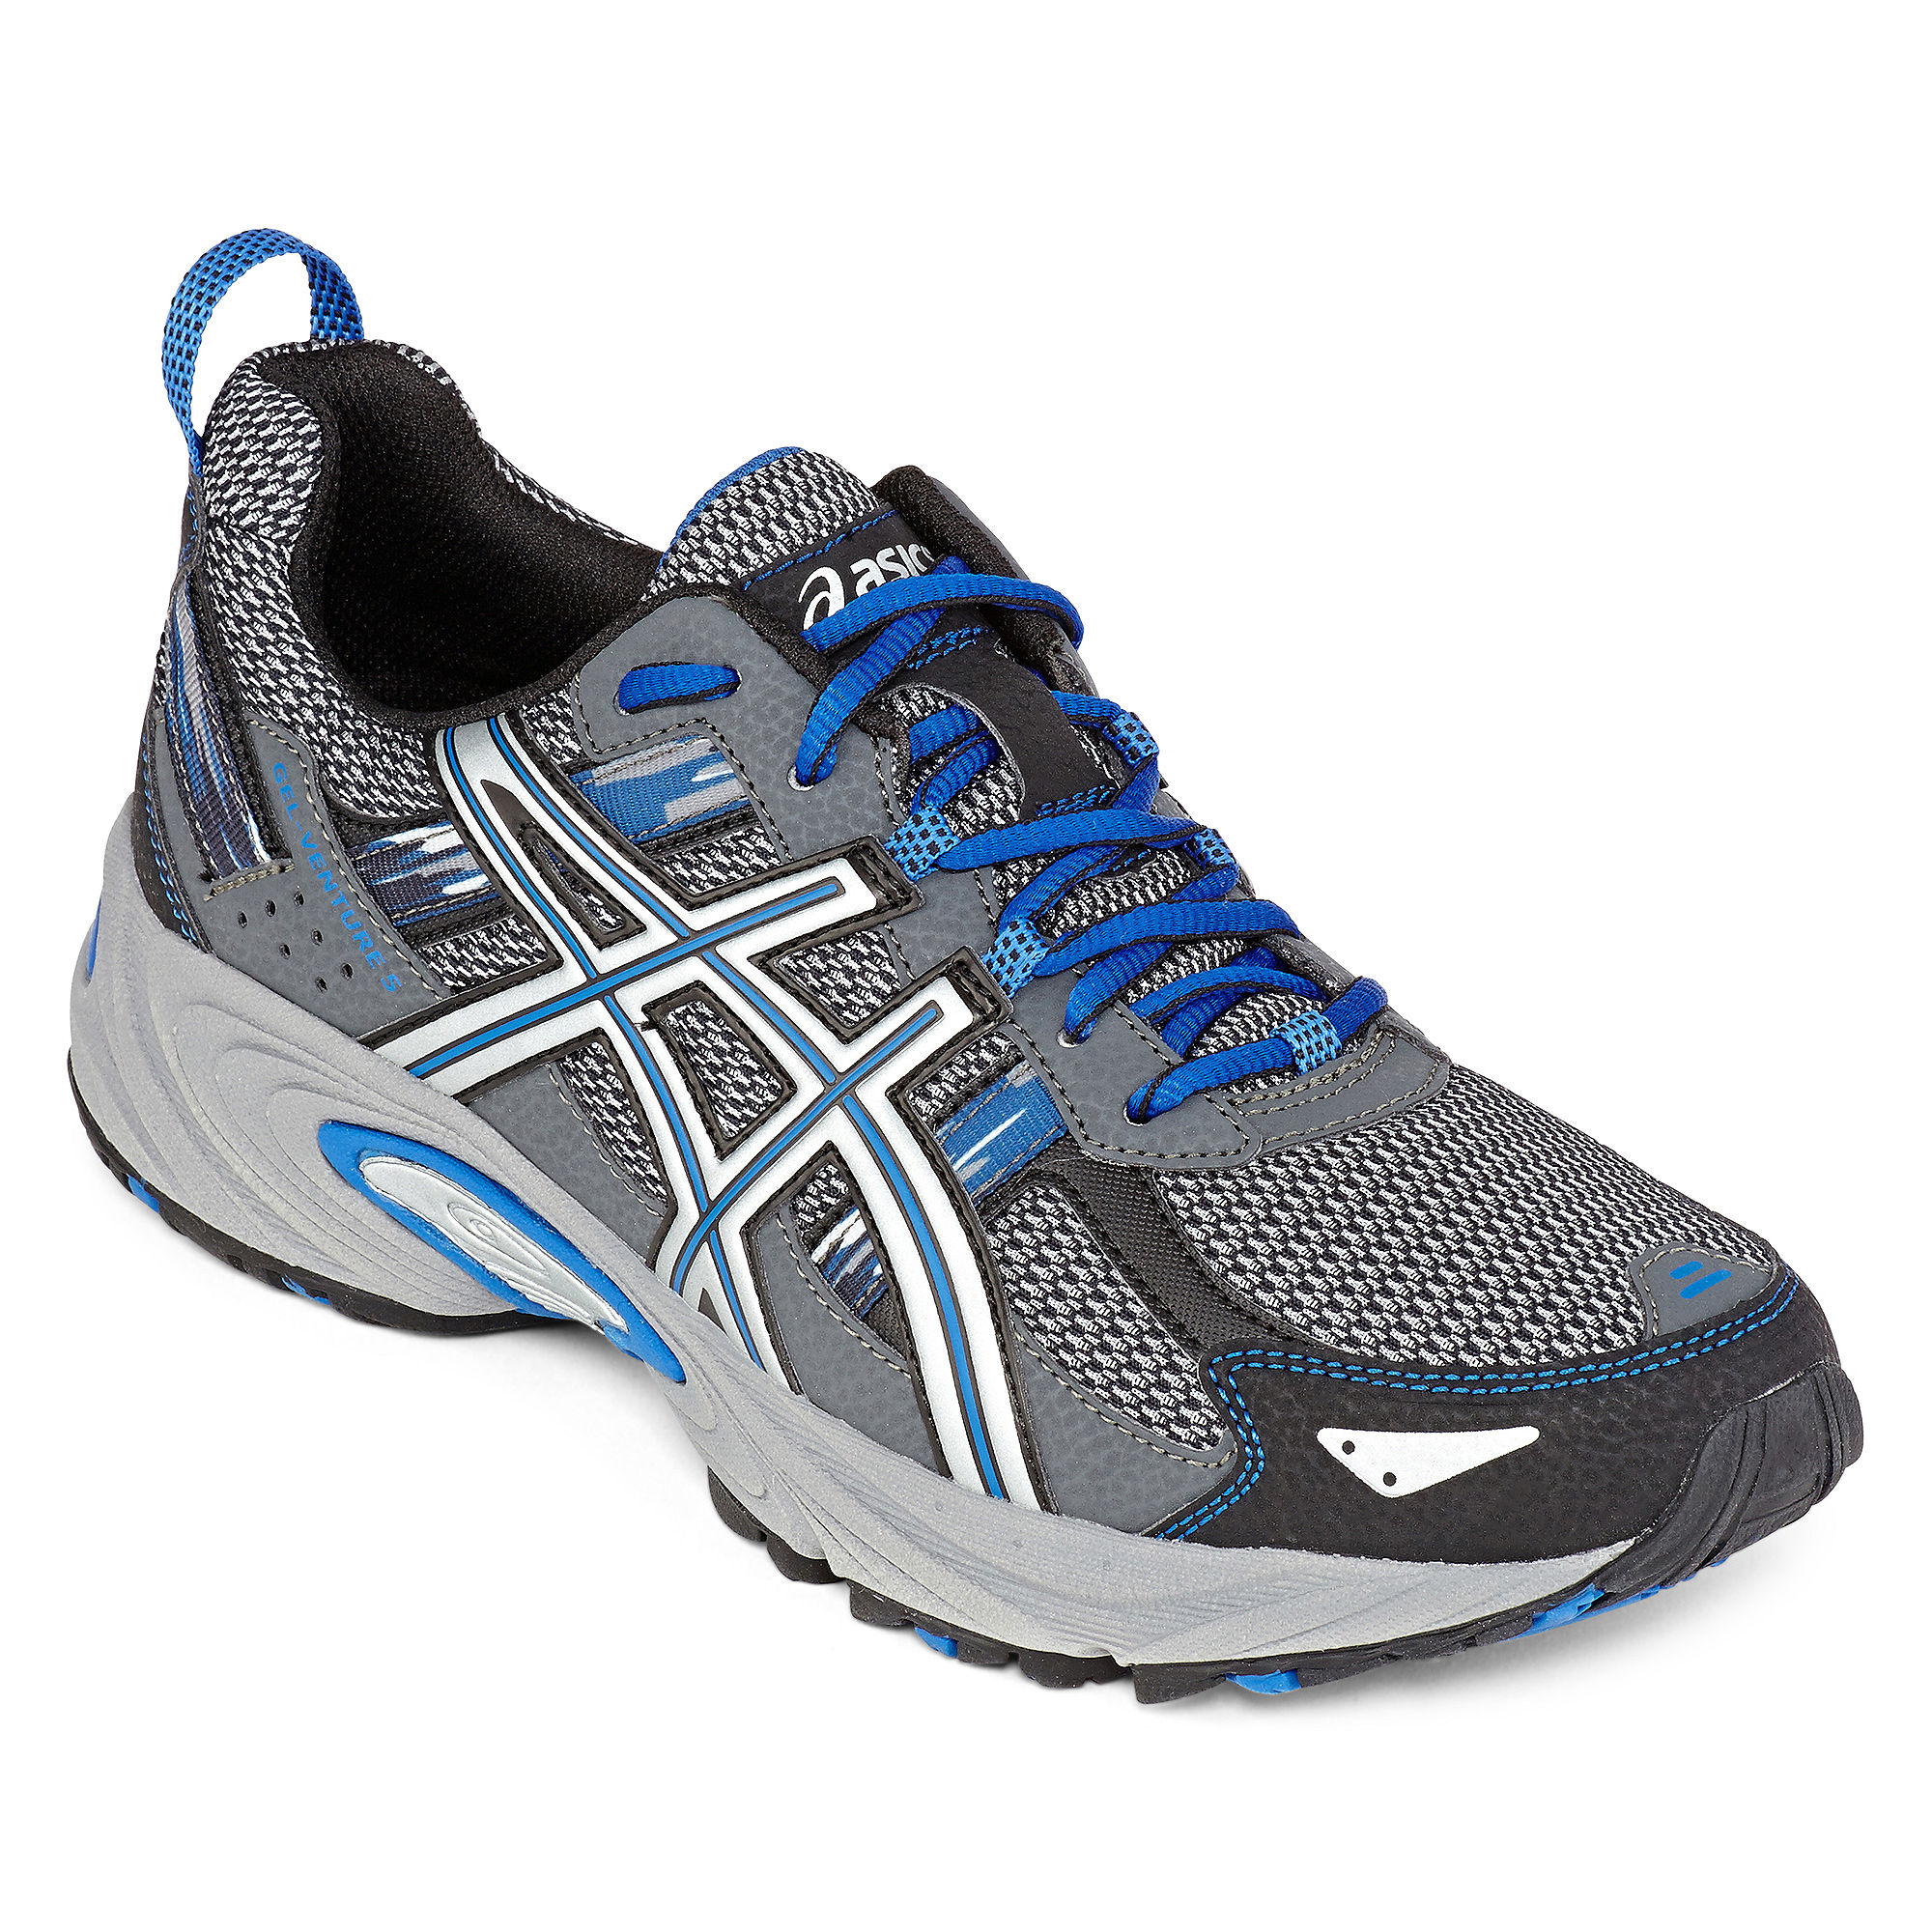 ASICS GEL-Venture 5 Mens Running Shoes